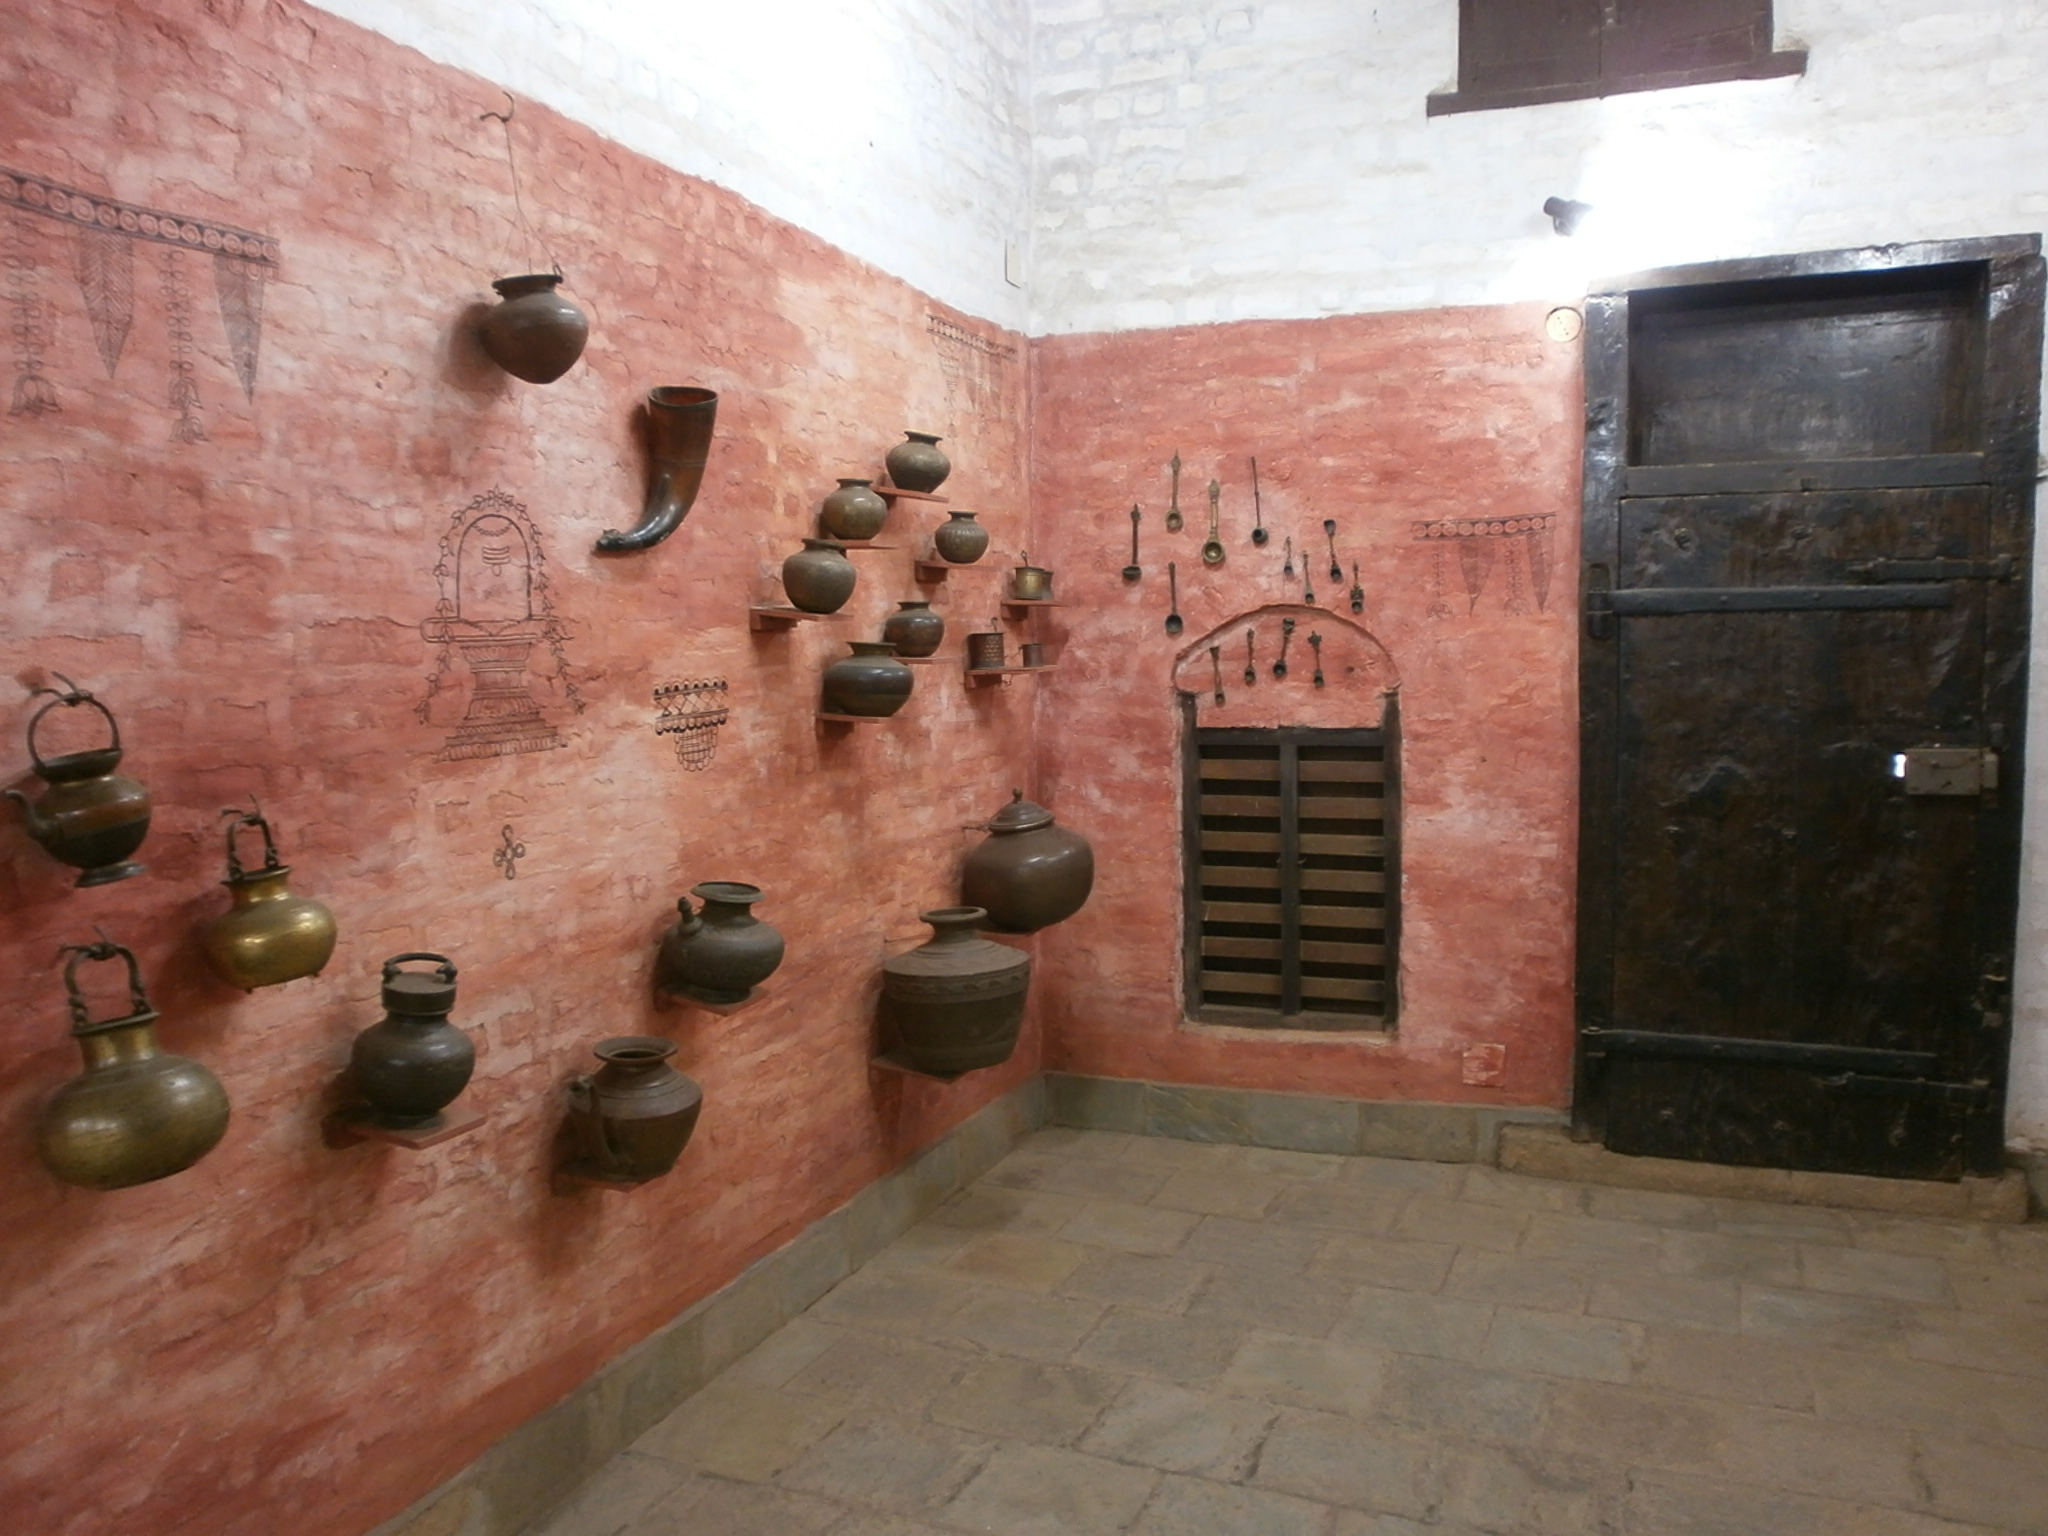 http://upload.wikimedia.org/wikipedia/commons/c/c4/Dakshina-Chitra-Inside-house-1.JPG